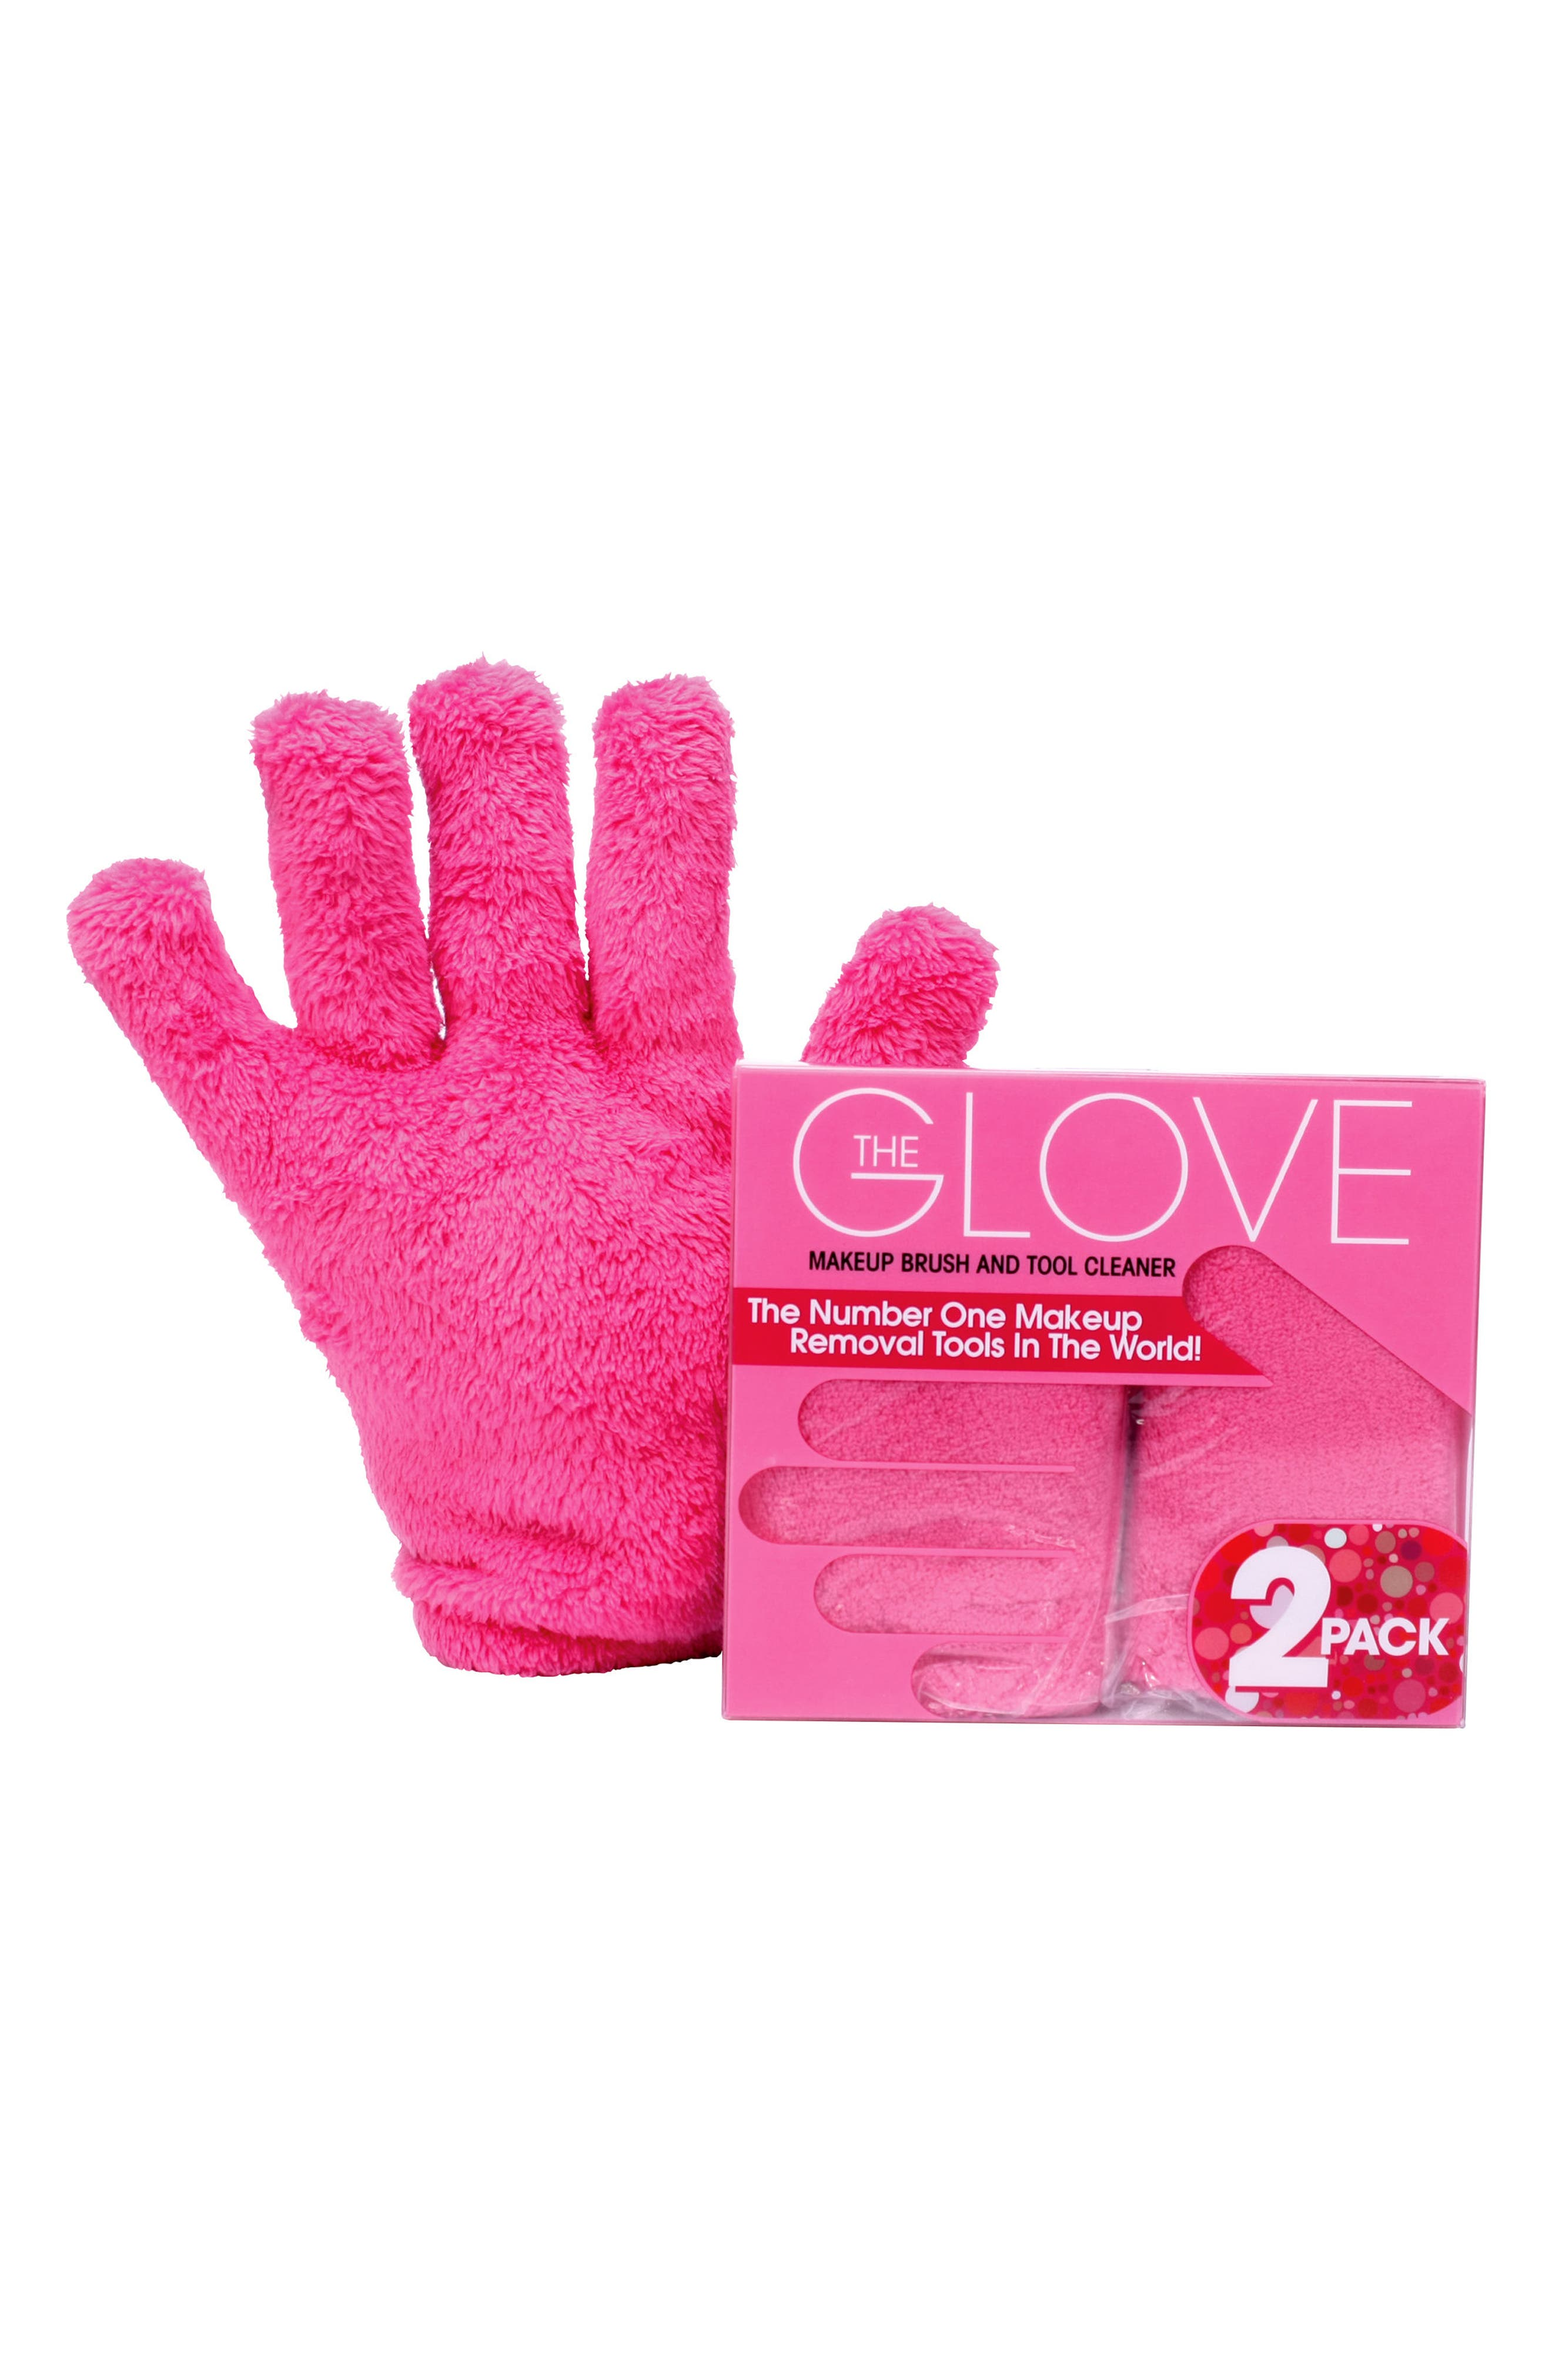 2-Pack The Glove Makeup Brush and Tool Cleaner,                         Main,                         color, No Color